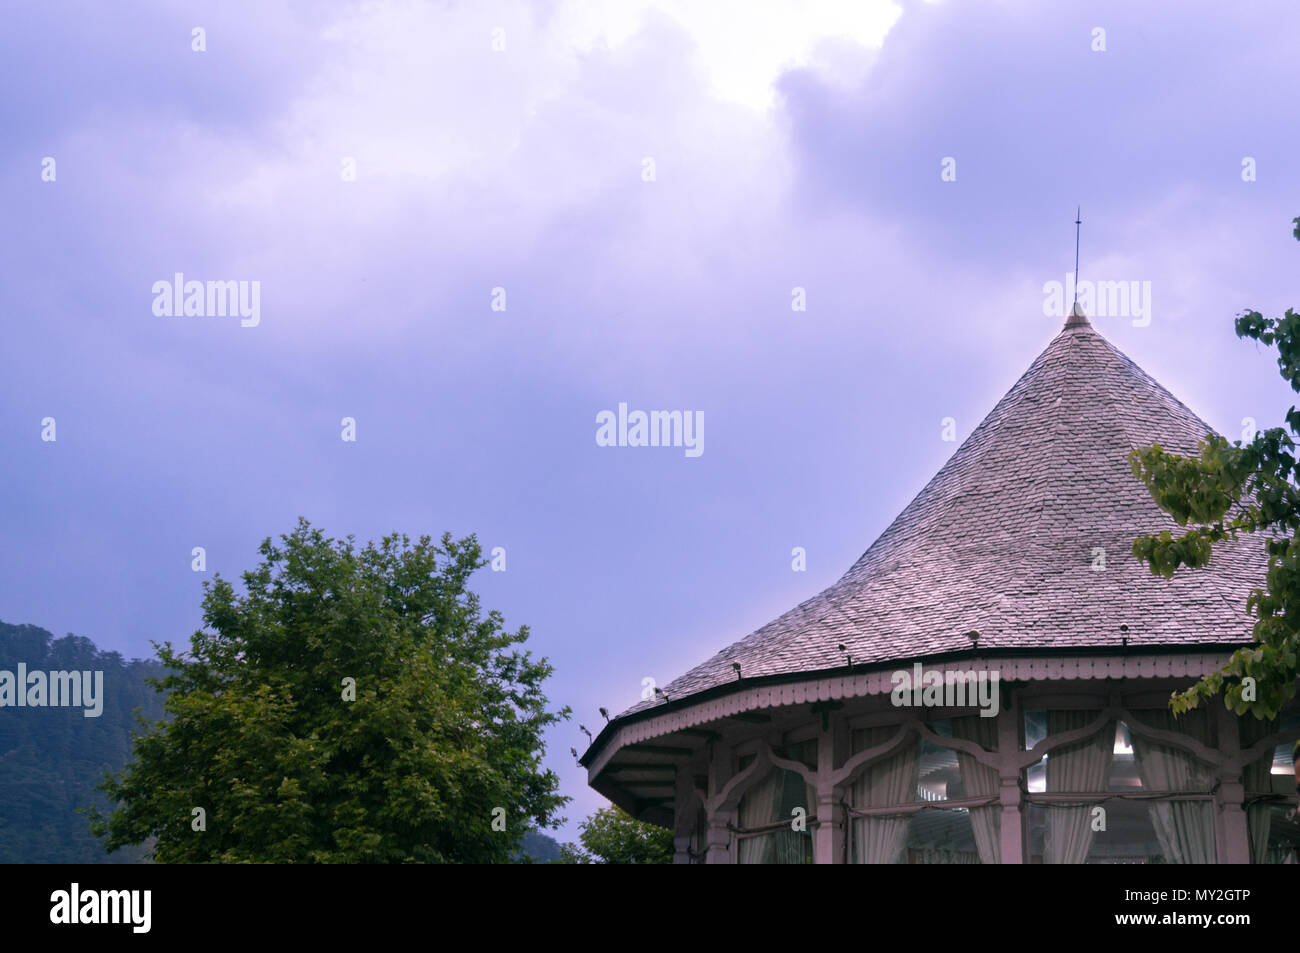 Round building with a conical roof made of bricks shot against a cloudy sky during the evening. Common feature in the buildings of shimla, darjeeling and other hill stations - Stock Image